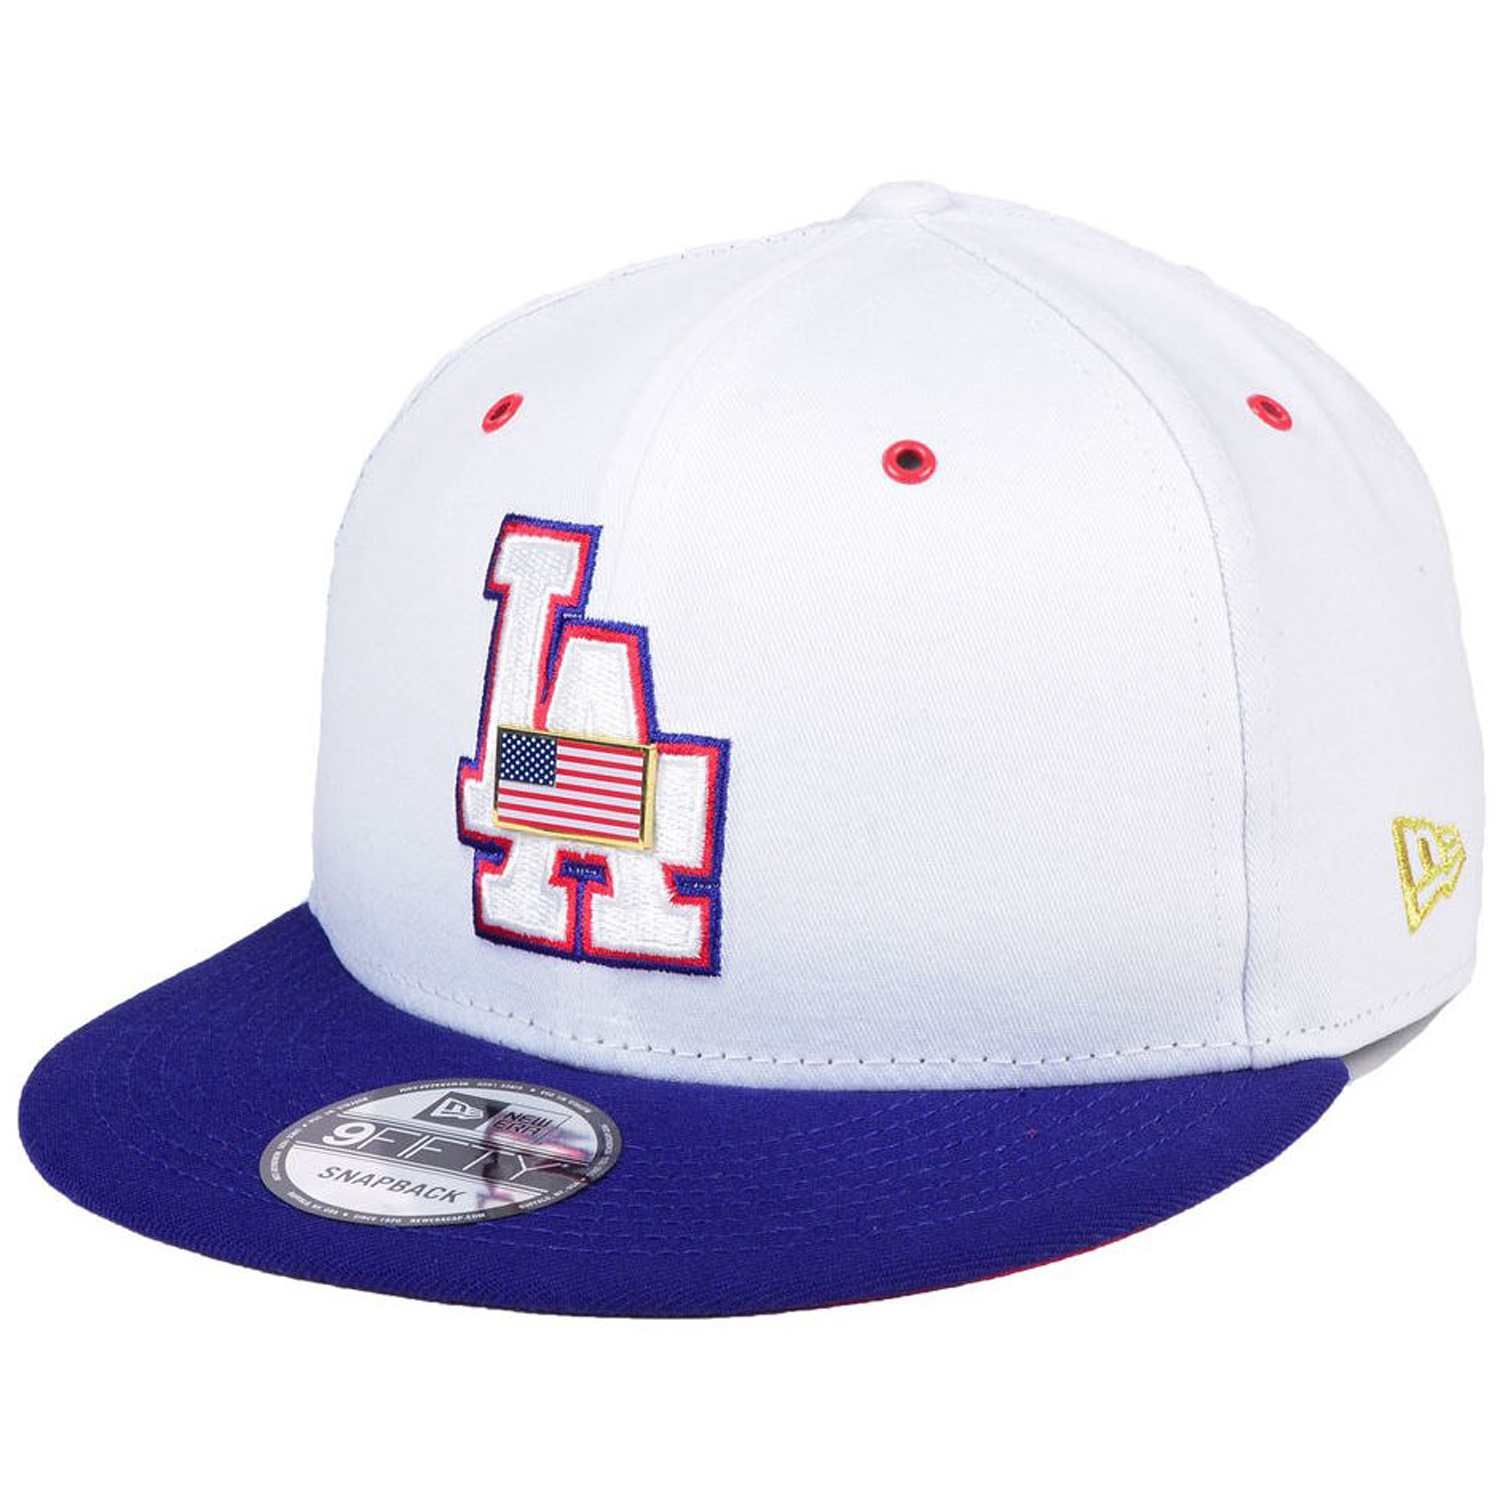 9519e68b3aa Details about New Era Los Angeles Dodgers Metal Pin USA American Flag 9Fifty  Snapback Cap Hat